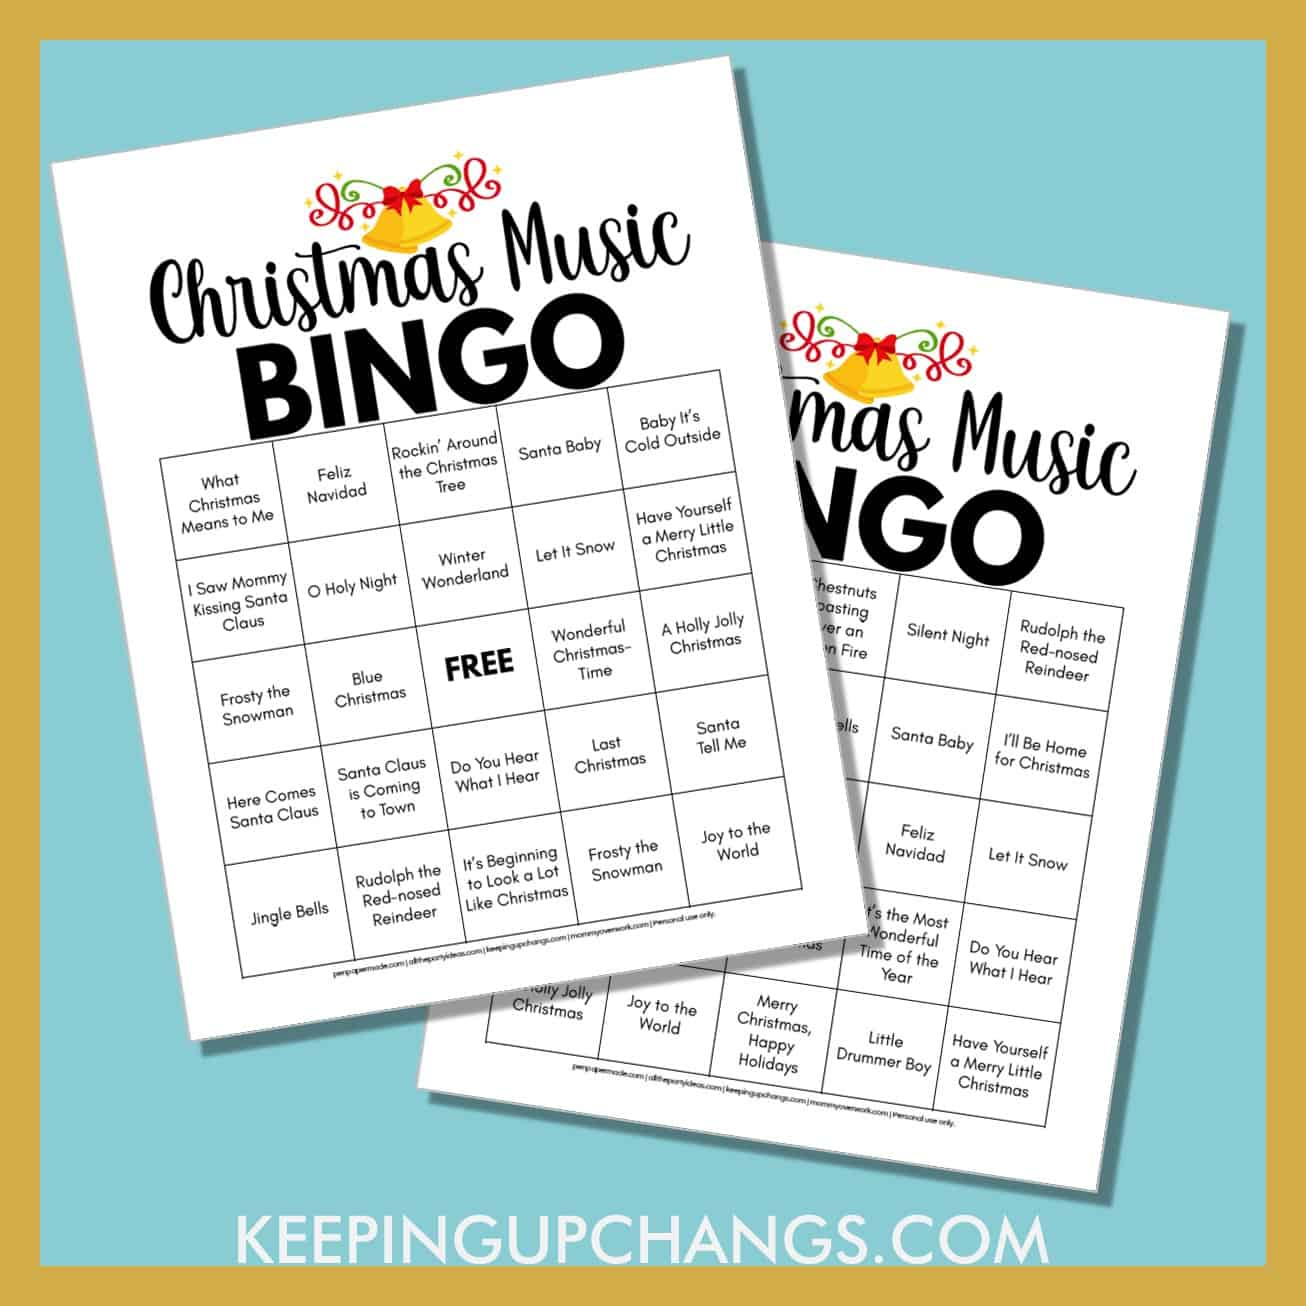 simple easy christmas music bingo with free printable in 4 versions.